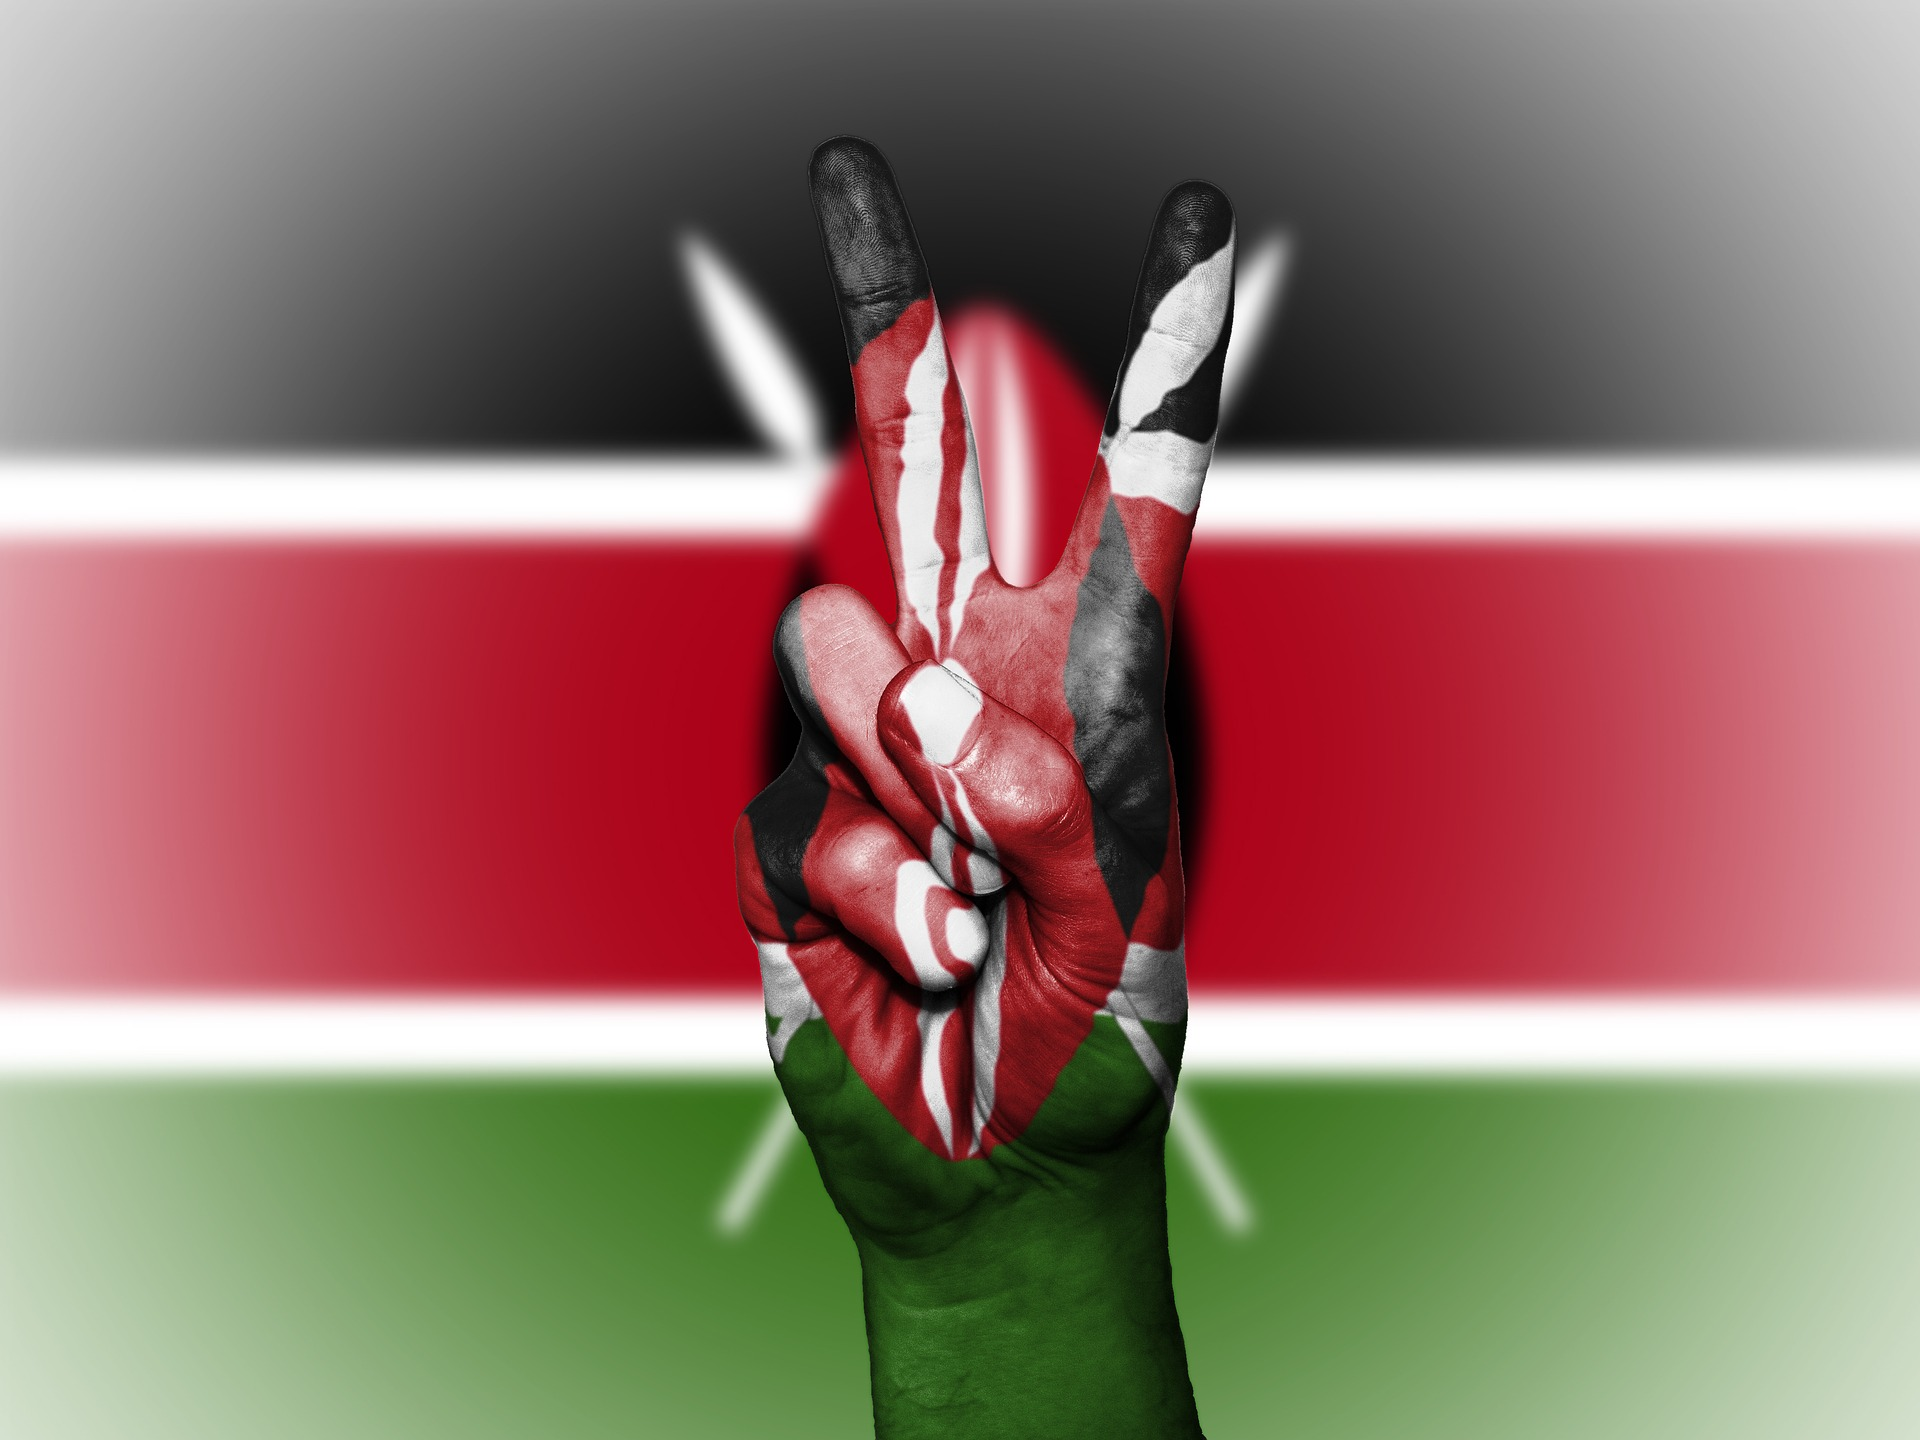 CFD Broker Pepperstone Expands its Forex Trading Services to Kenya